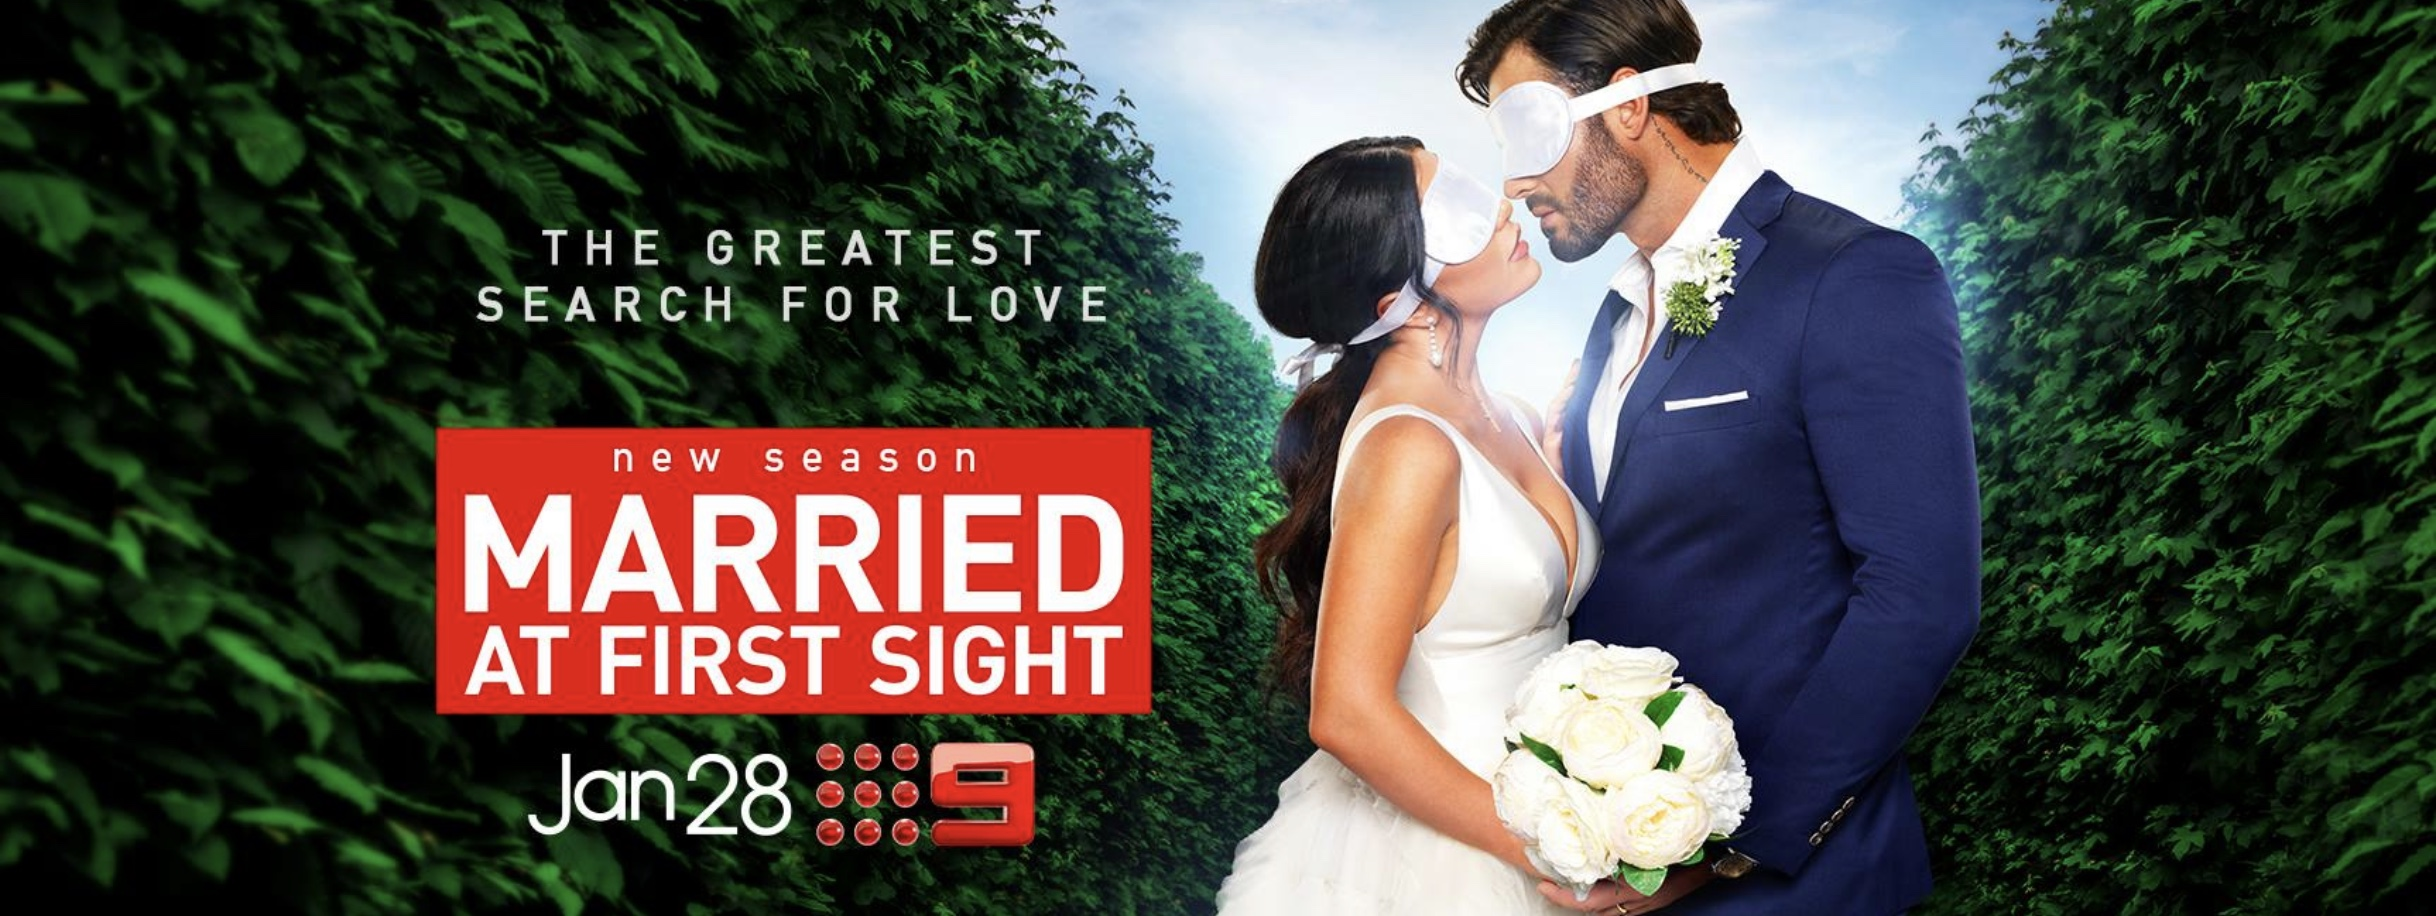 Married by Andy - Celebrant for Married at First Sight 2019